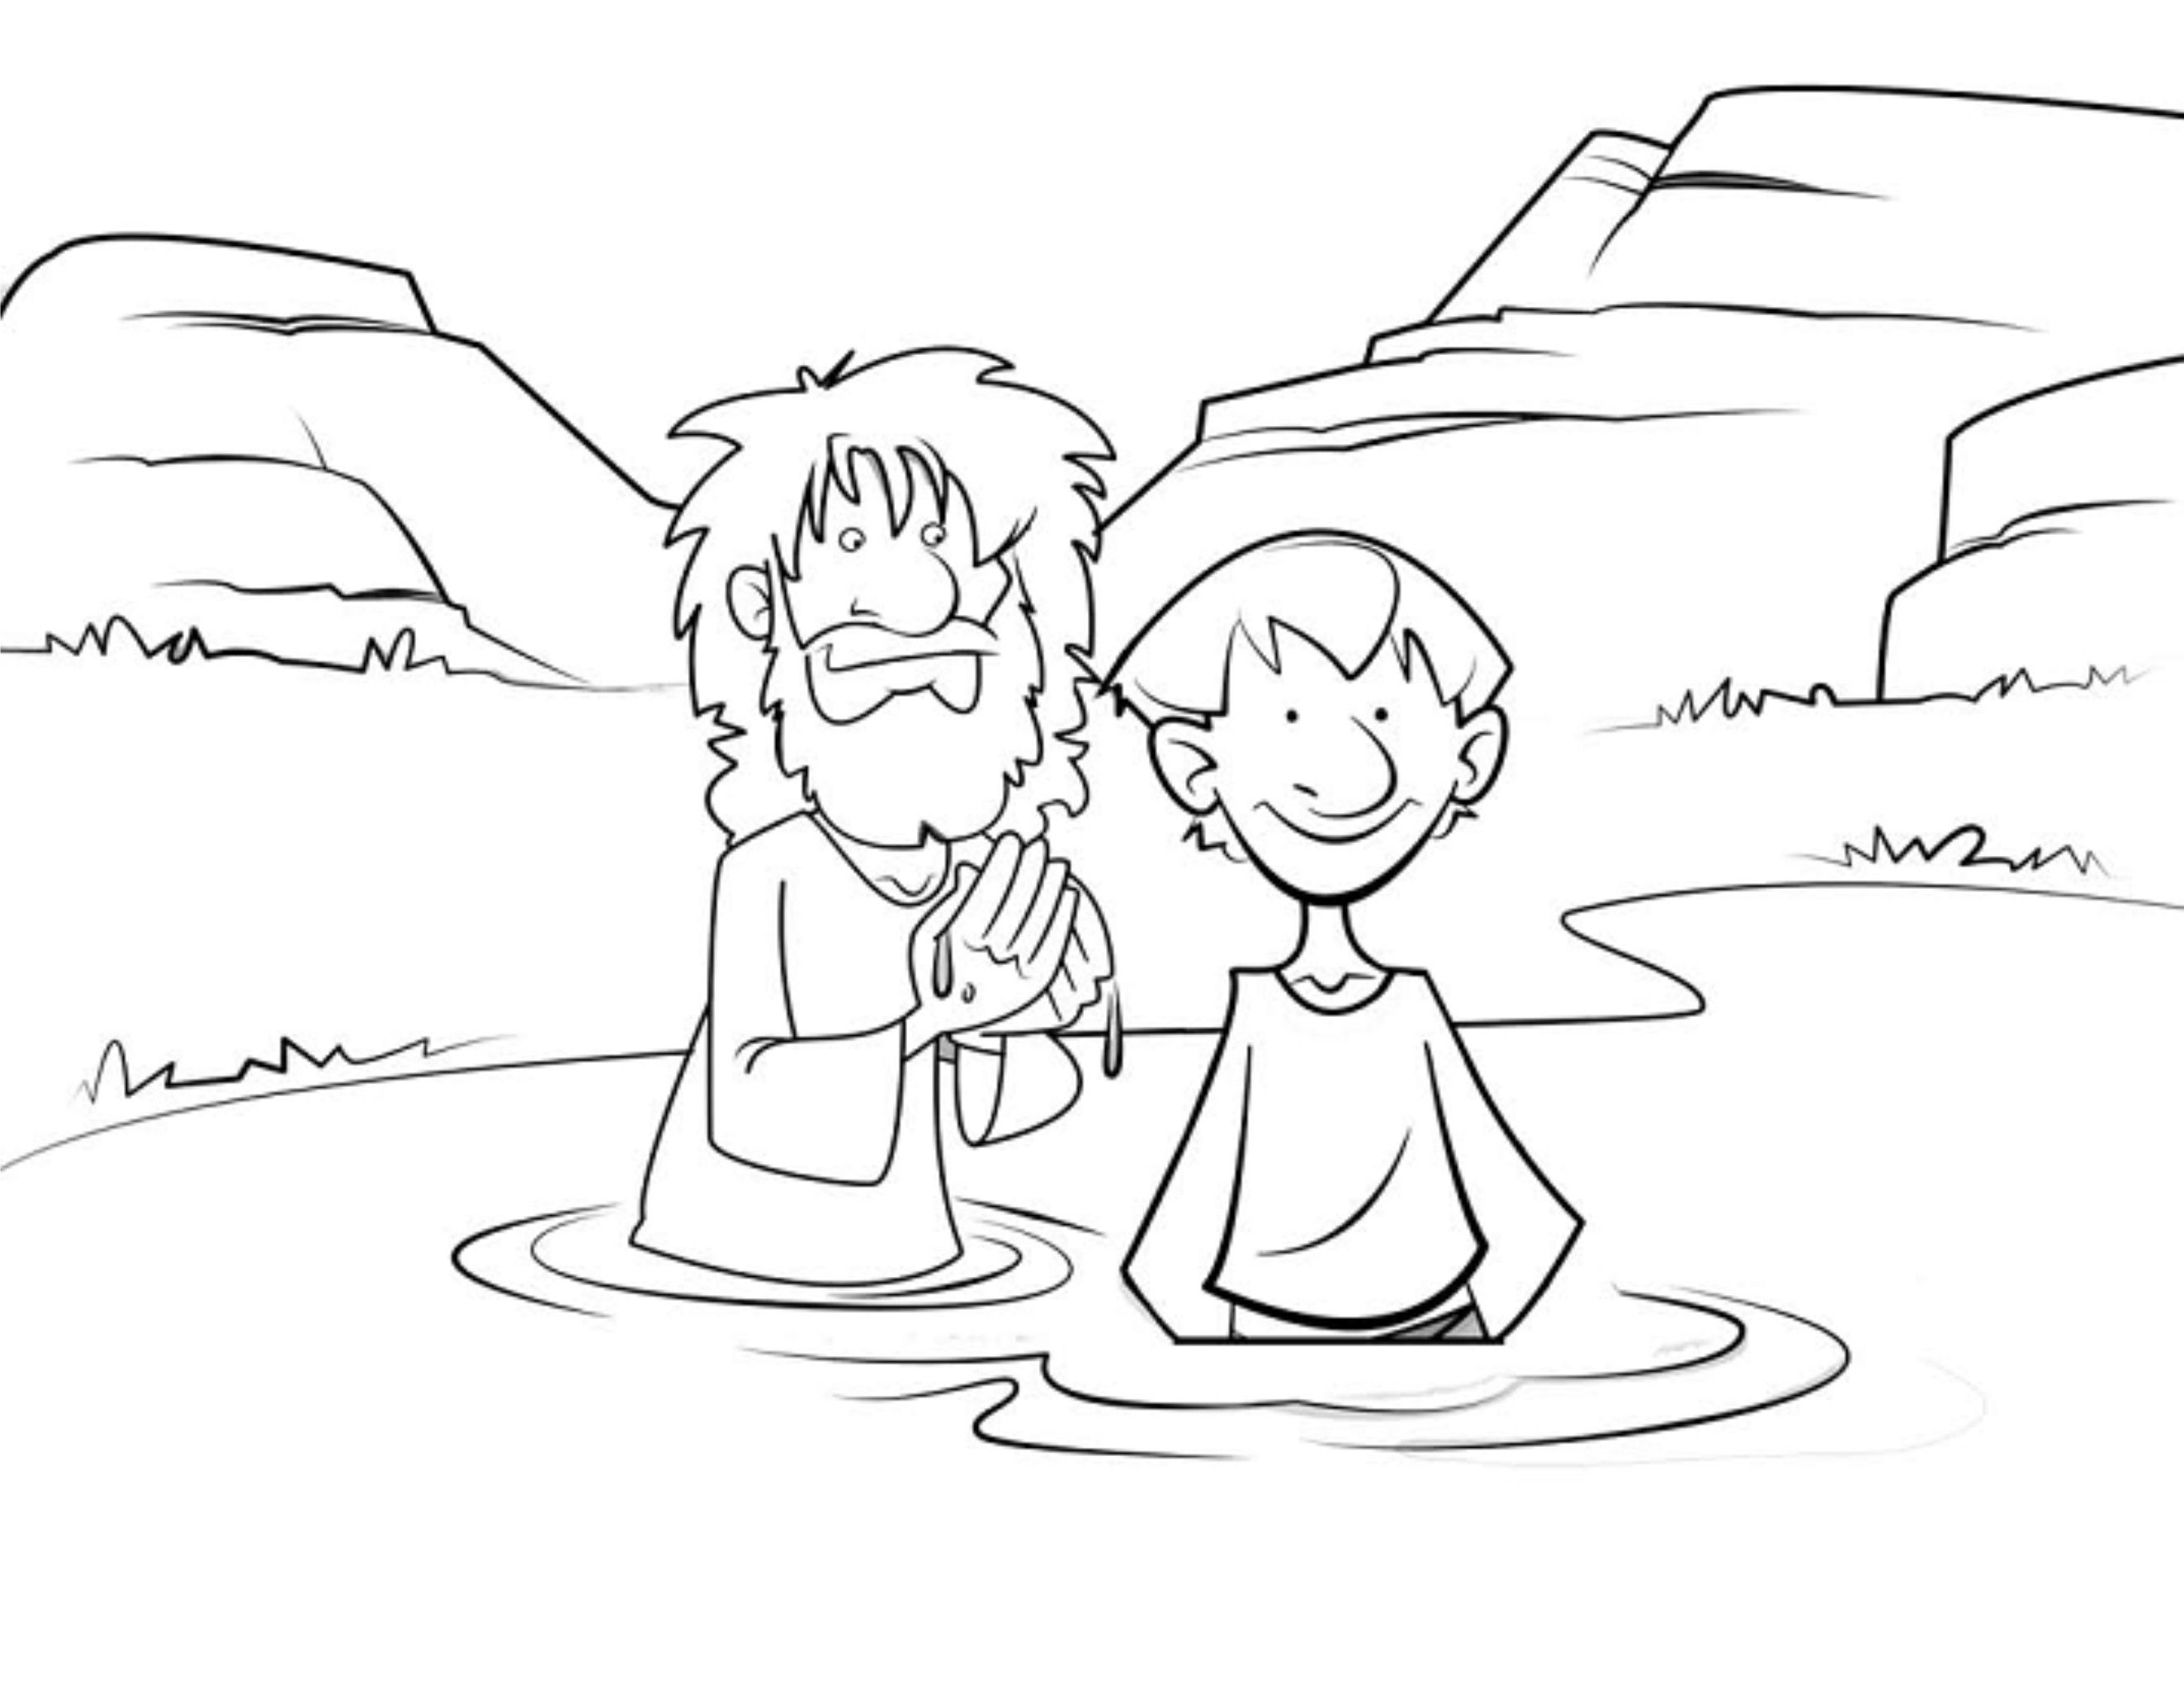 vida61.jpg (2646×2062) | Coloring pages, John the baptist ...